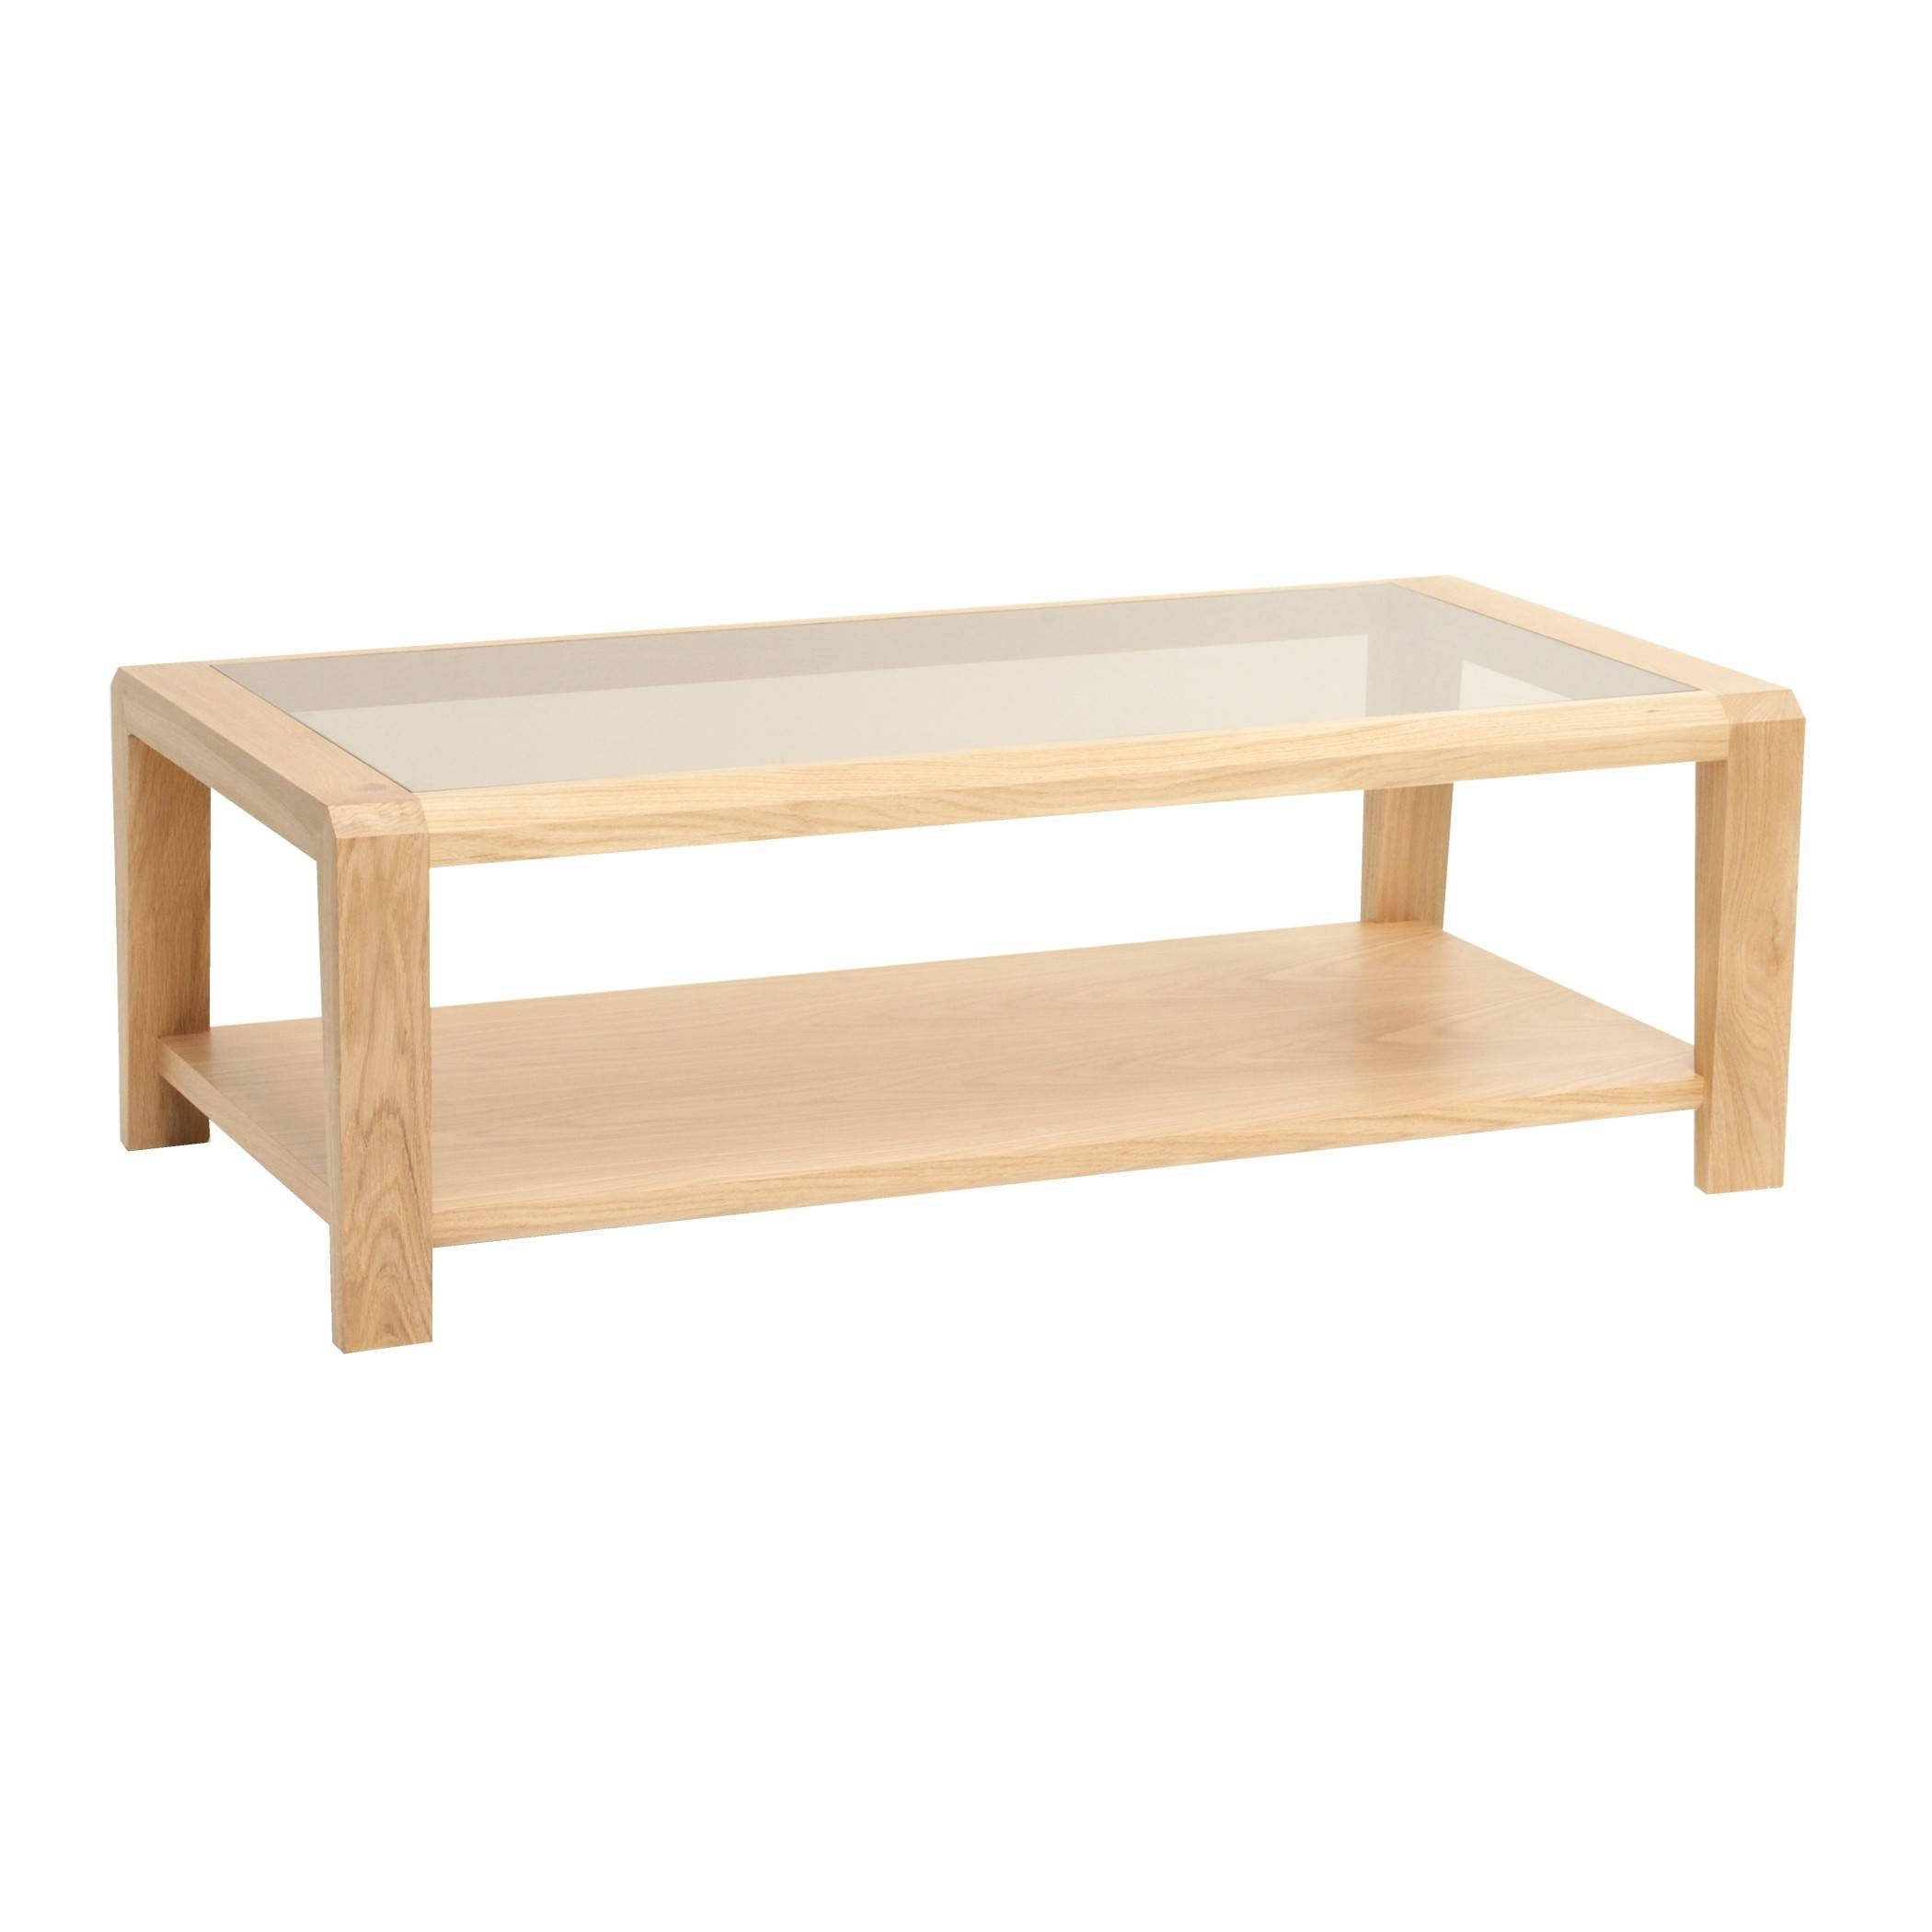 Oak Coffee Table With Glass Top And Shelf | Gola Furniture Uk throughout Oak Coffee Table With Glass Top (Image 14 of 15)